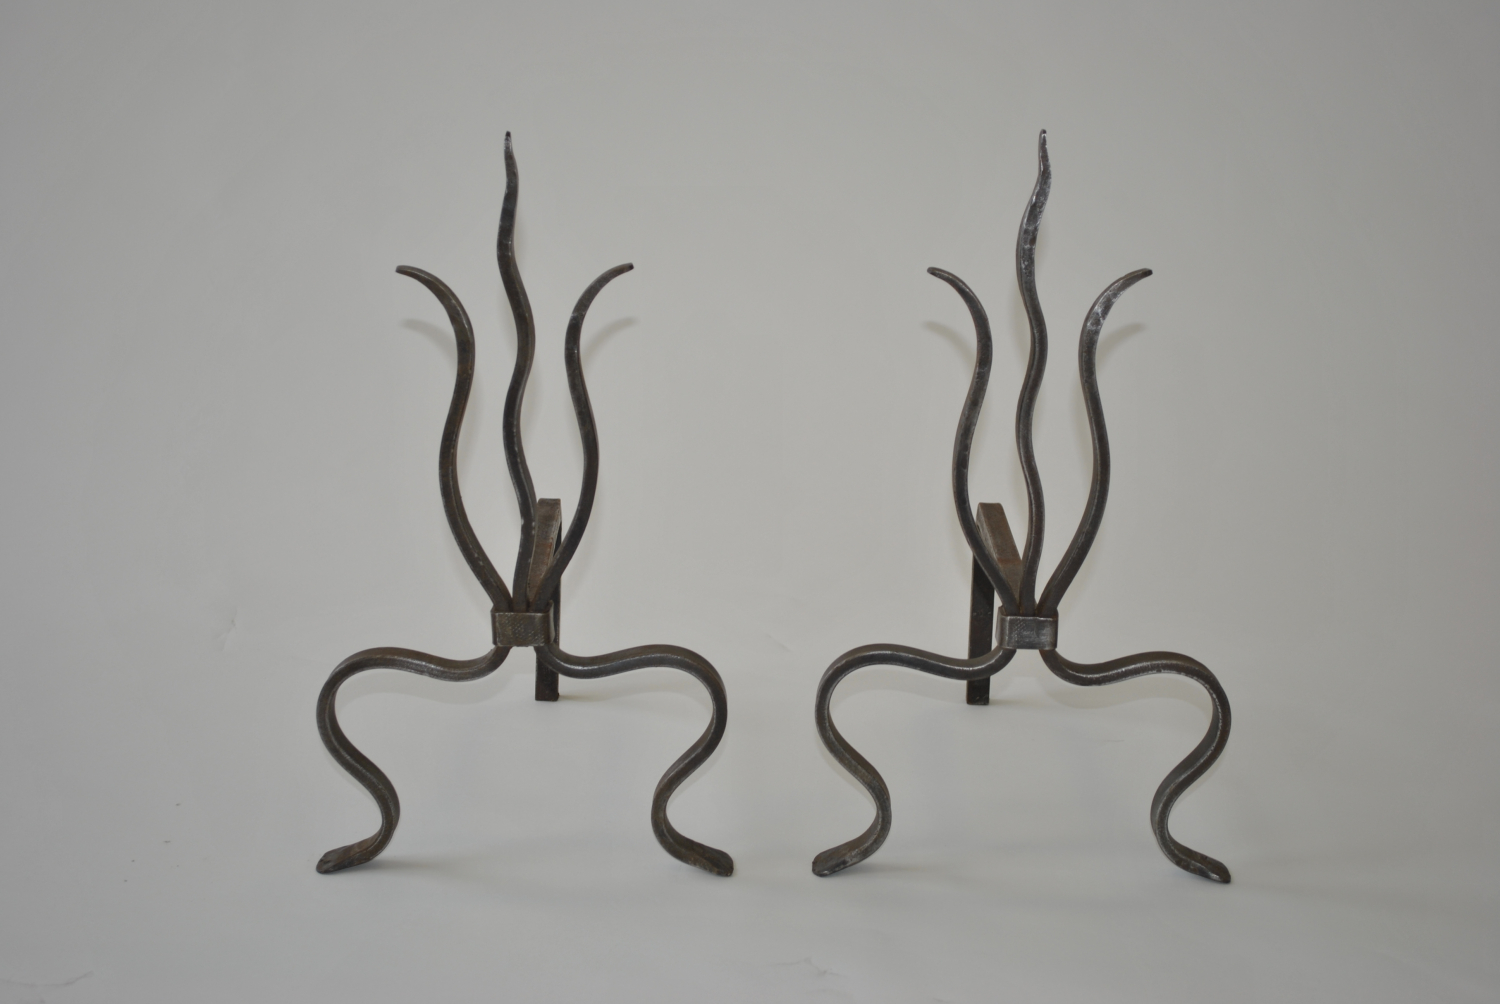 Wrought Iron Fire Dogs / Andirons